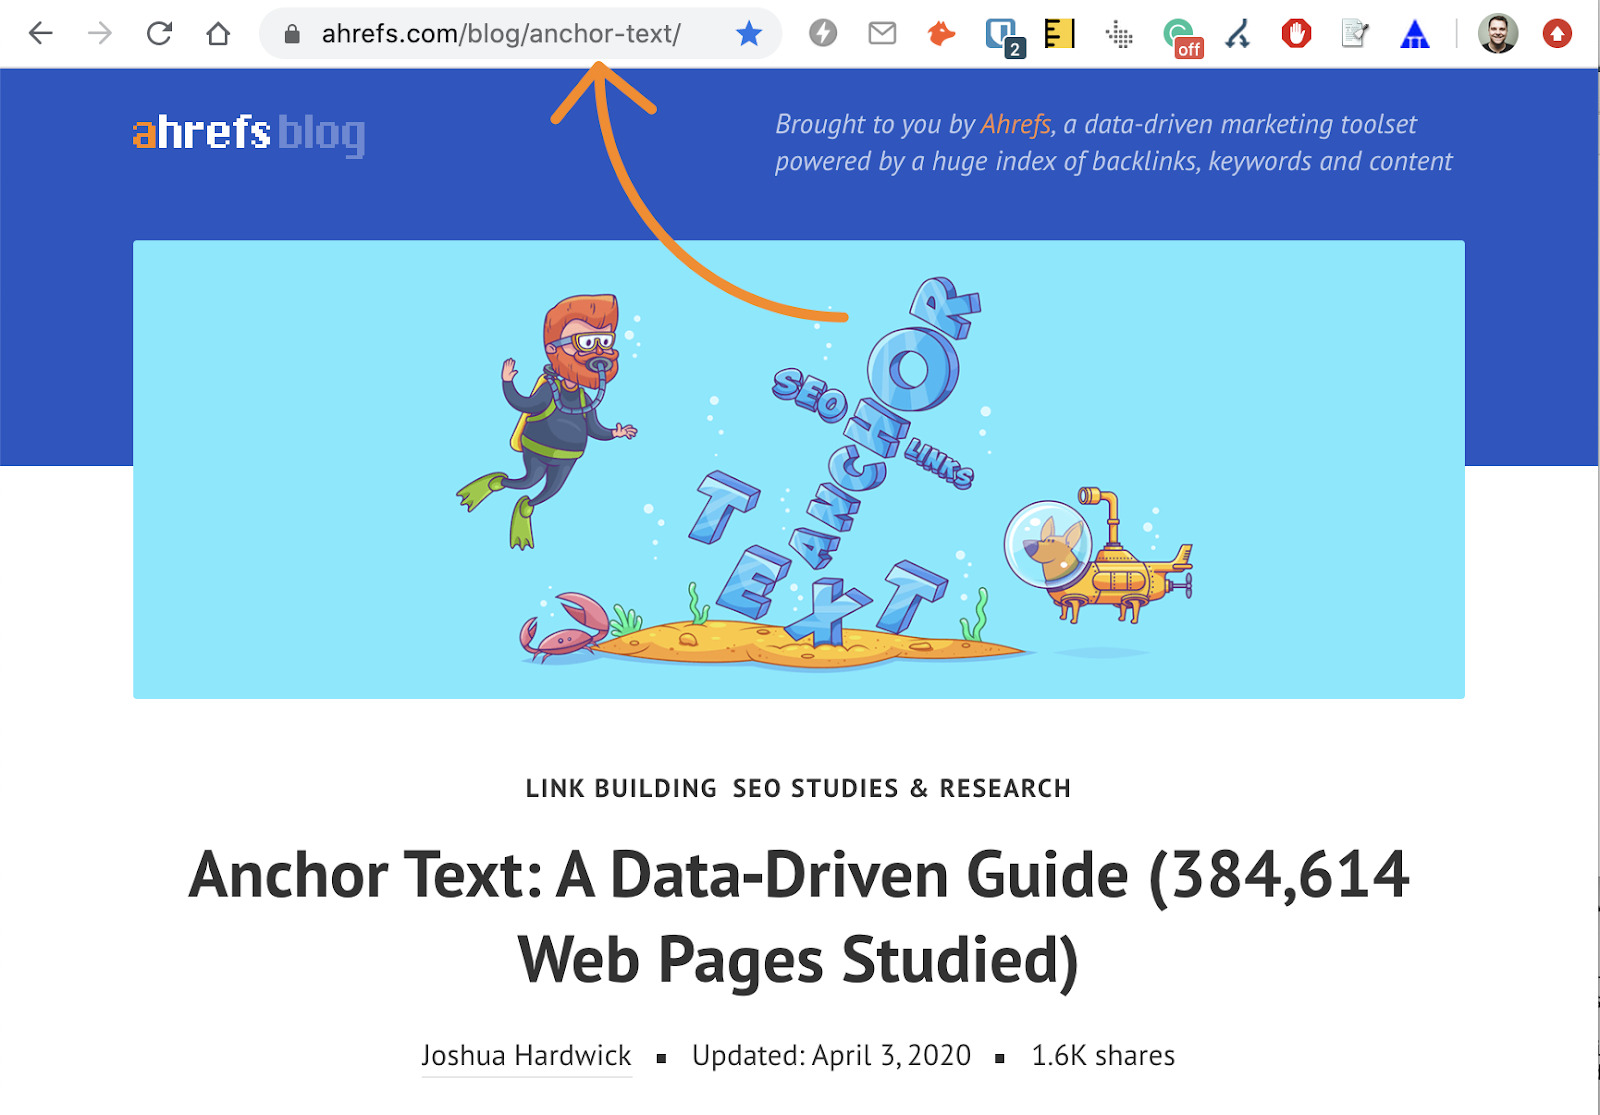 4 anchor text post